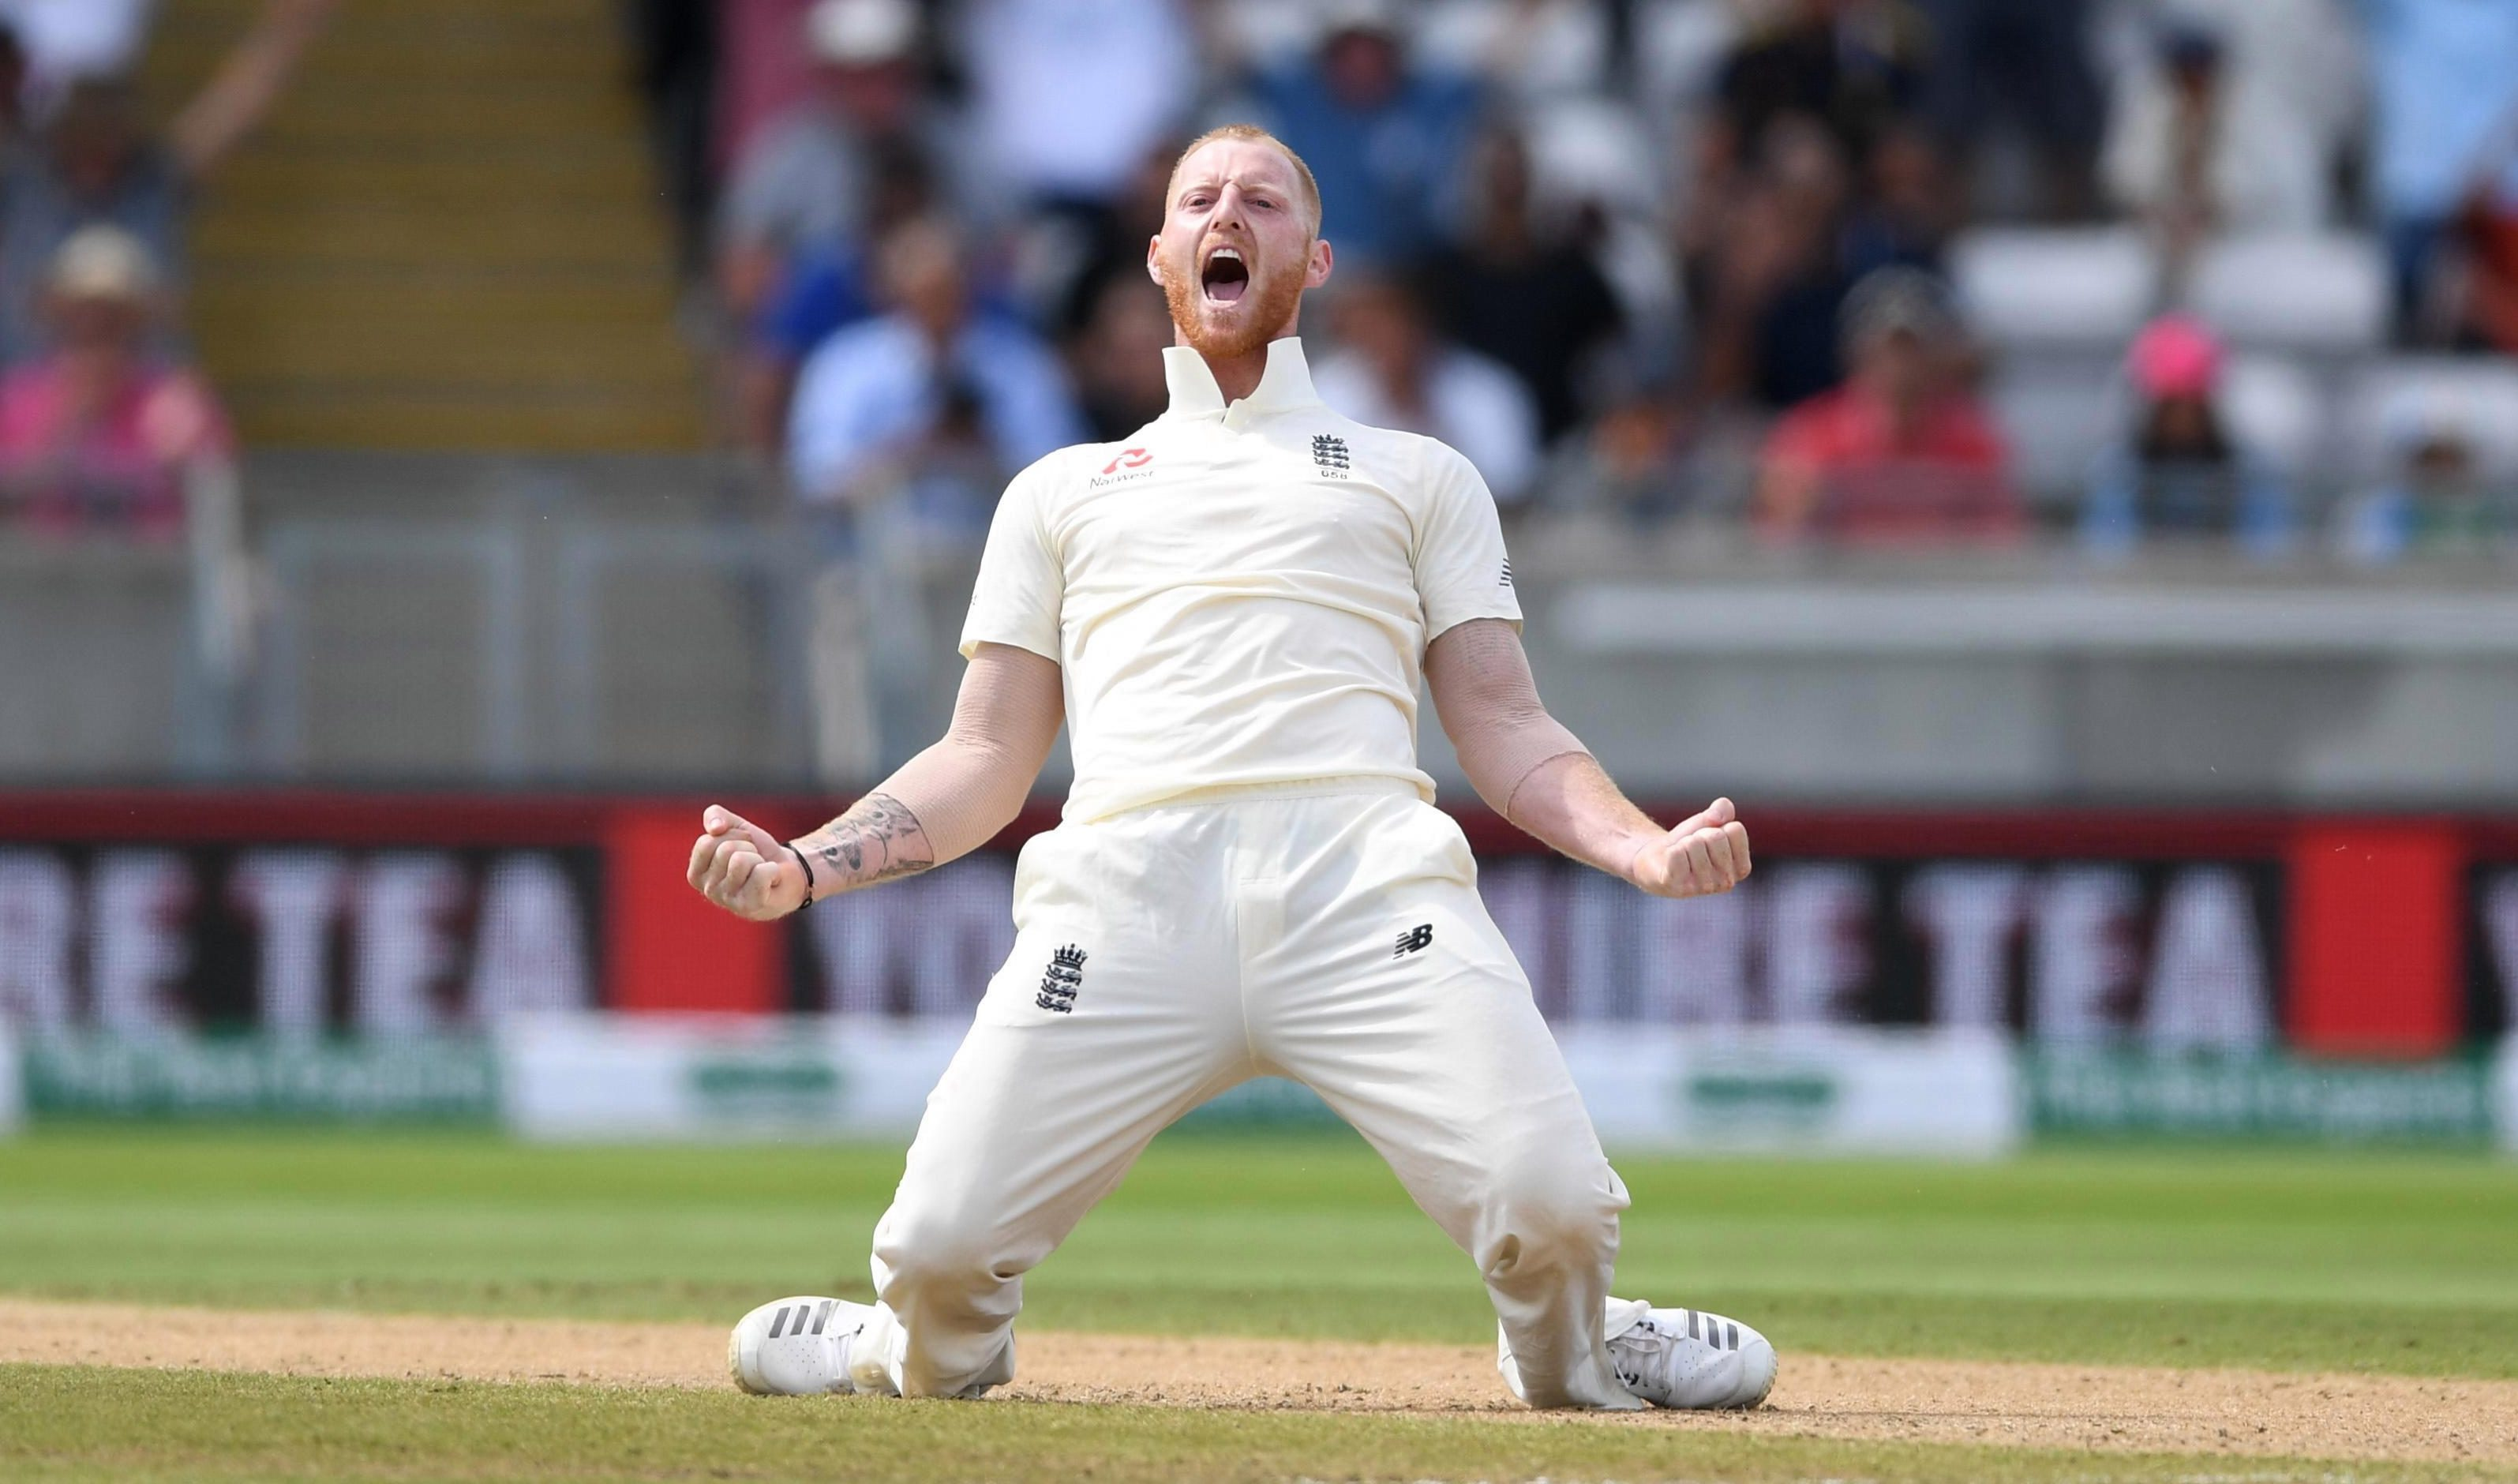 Ben Stokes is unavailable for the second Test as he faces a court hearing for alleged affray